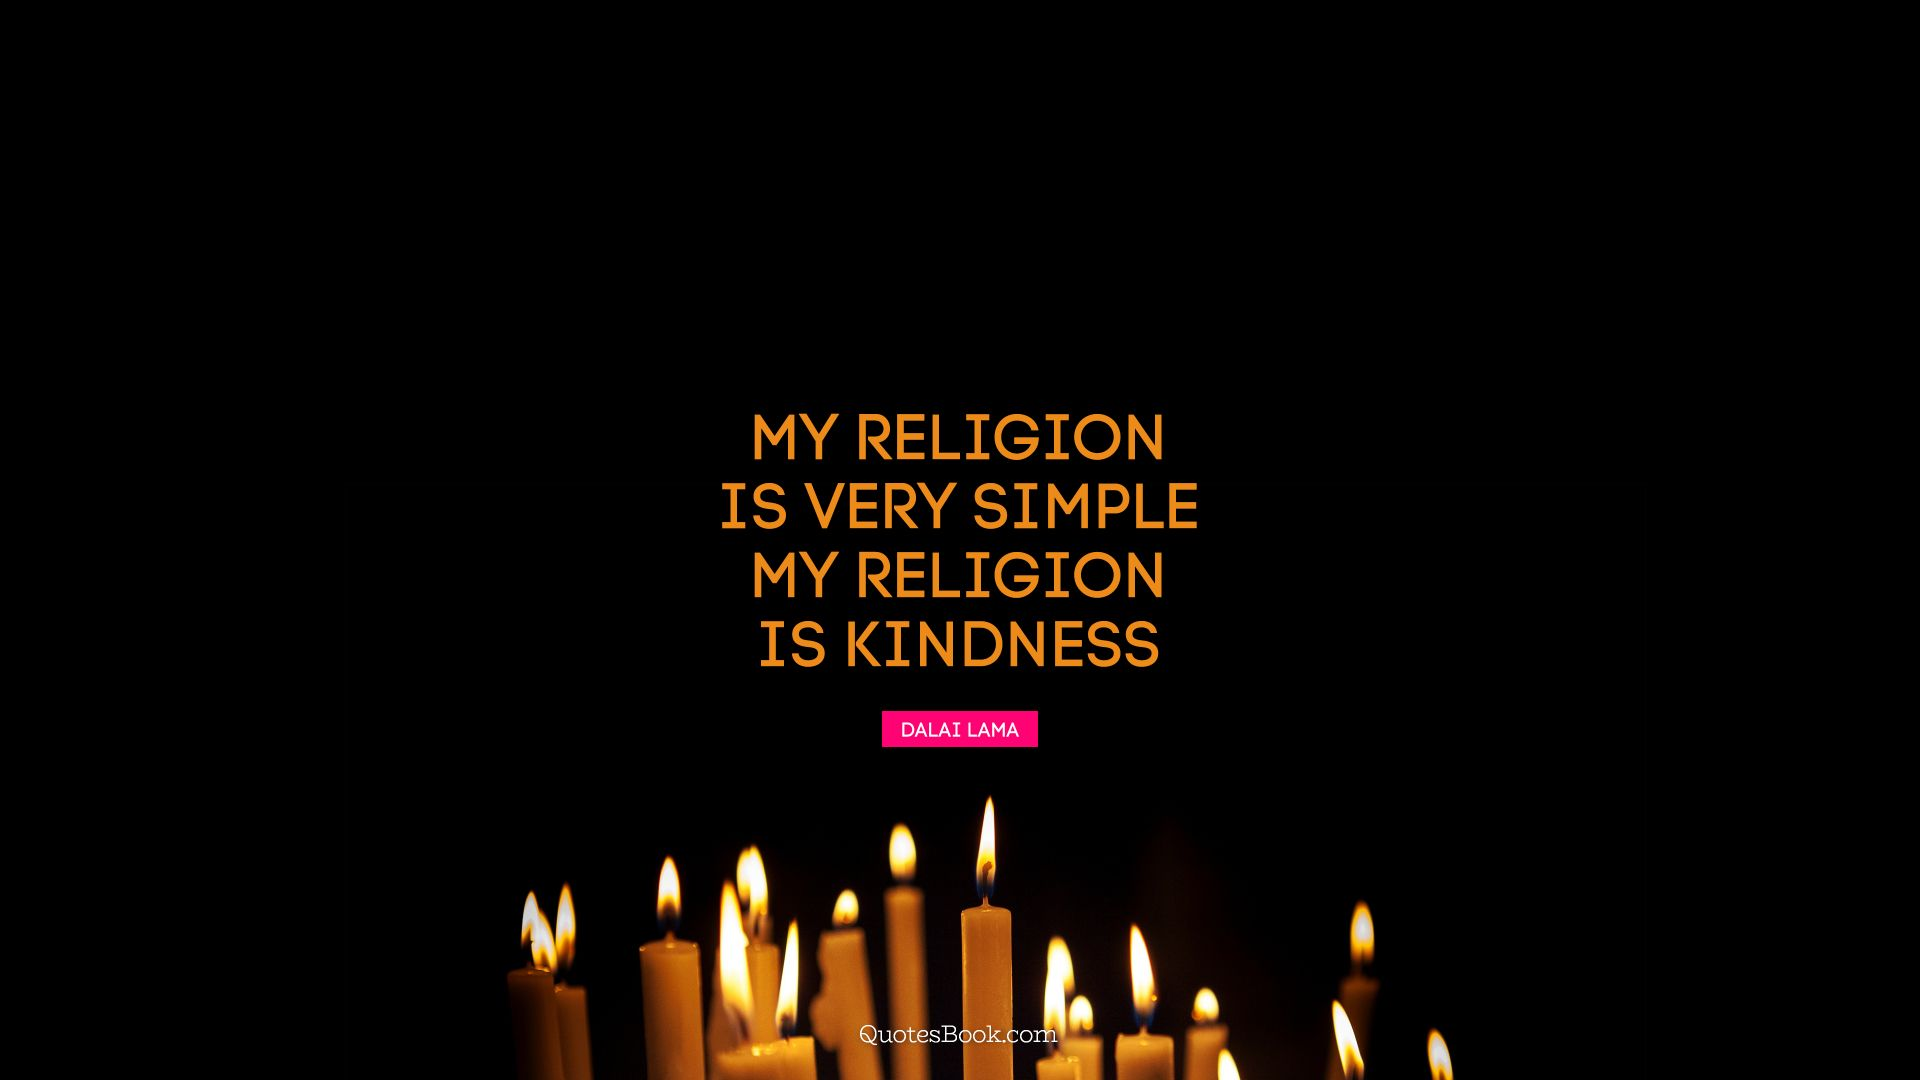 My religion is very simple. My religion is kindness. - Quote by Dalai Lama